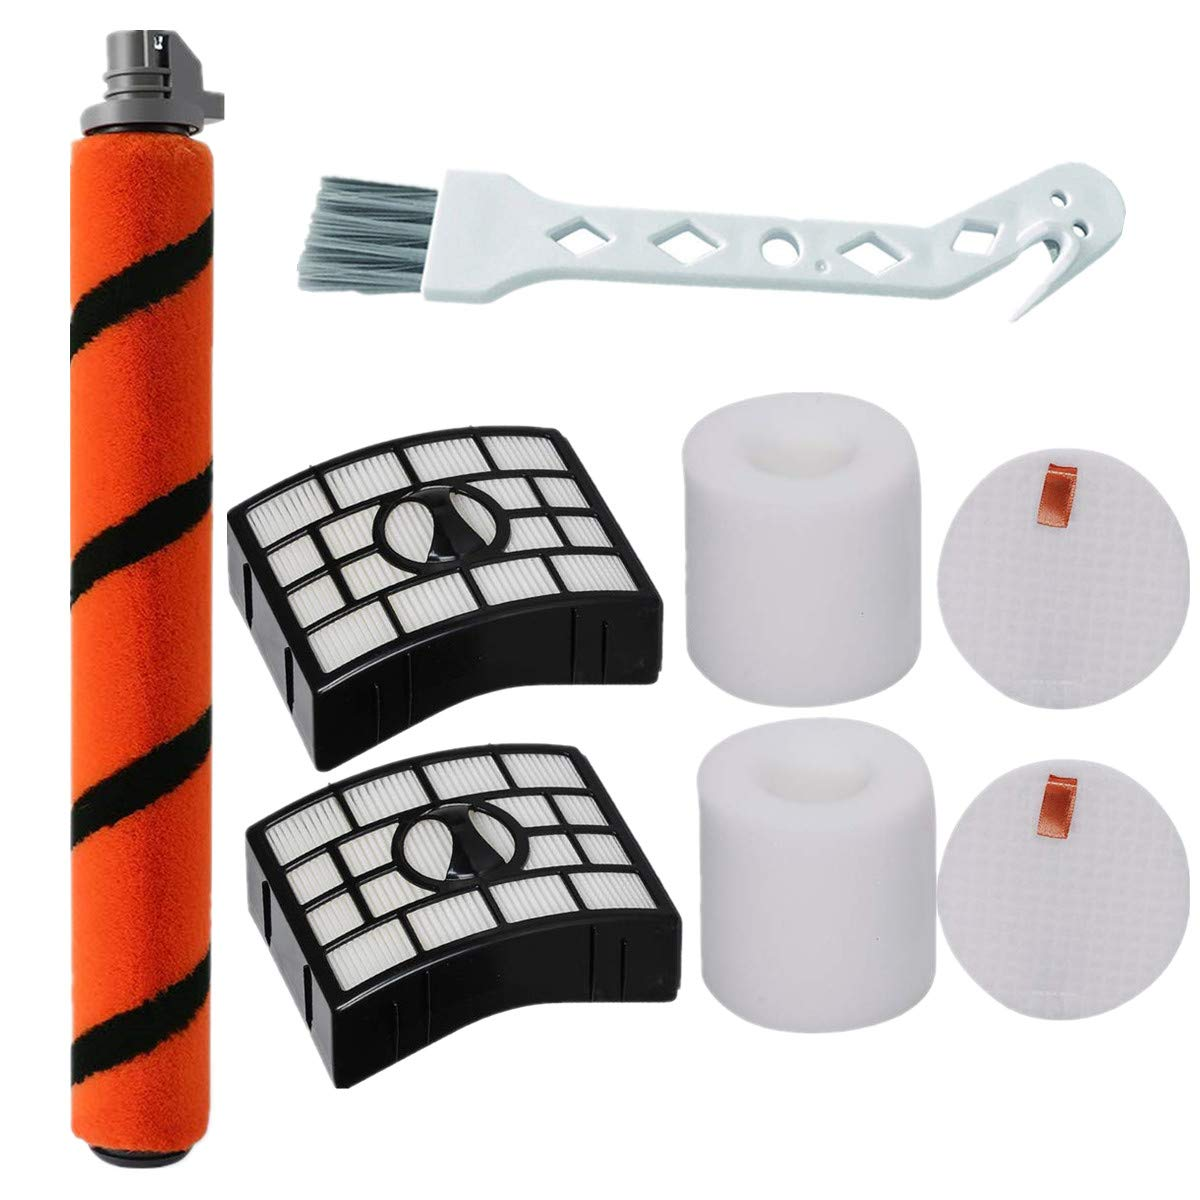 Bsnuo Brush Roll and 2 Filters Kit Replacement for Shark APEX DuoClean AZ1002 AZ1000 AZ1000W AX951 AX952 Vacuum Cleaner (1 Brush Roll+ 2 Filters)